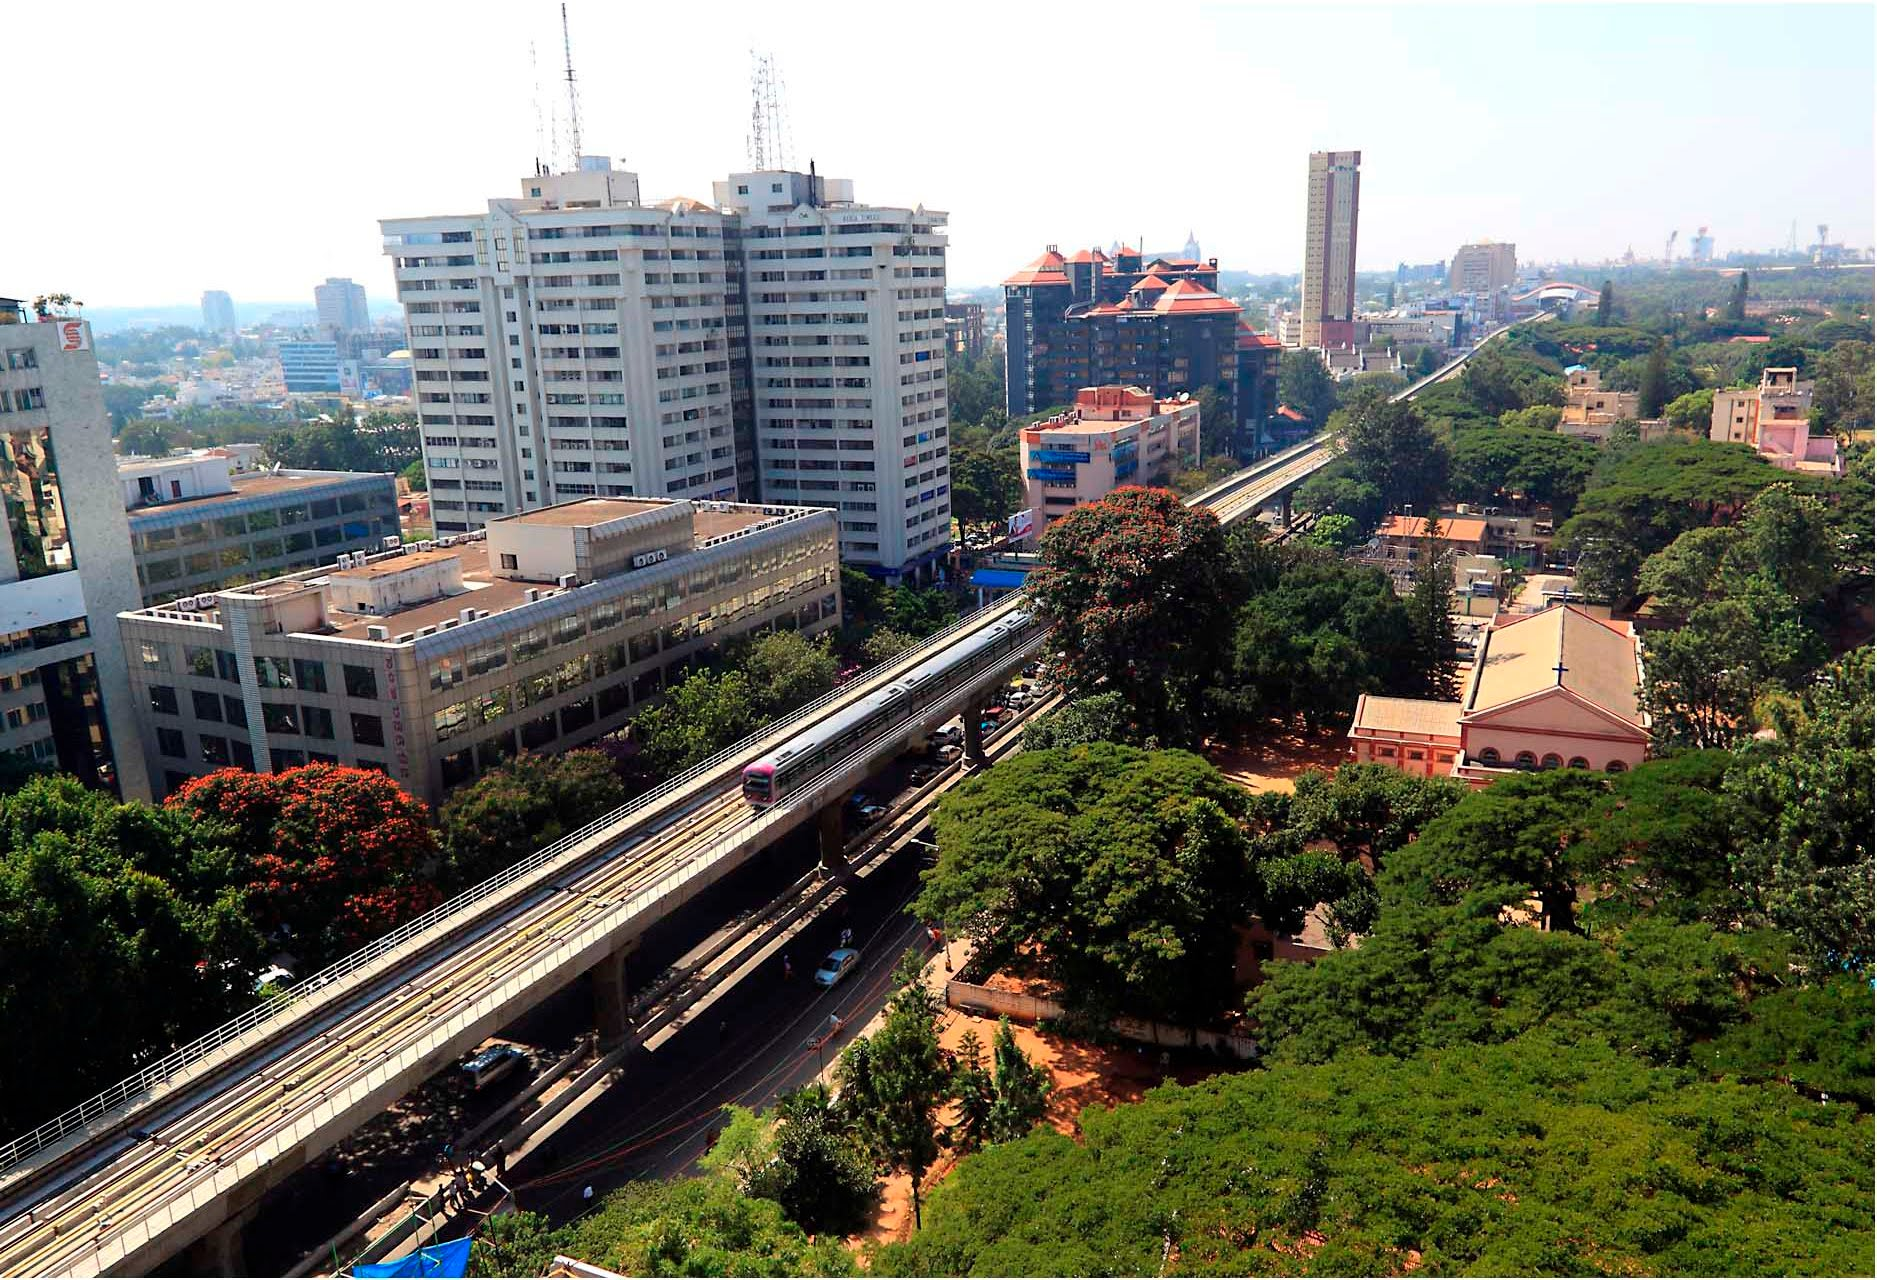 Bengaluru, India city with metro and greenery